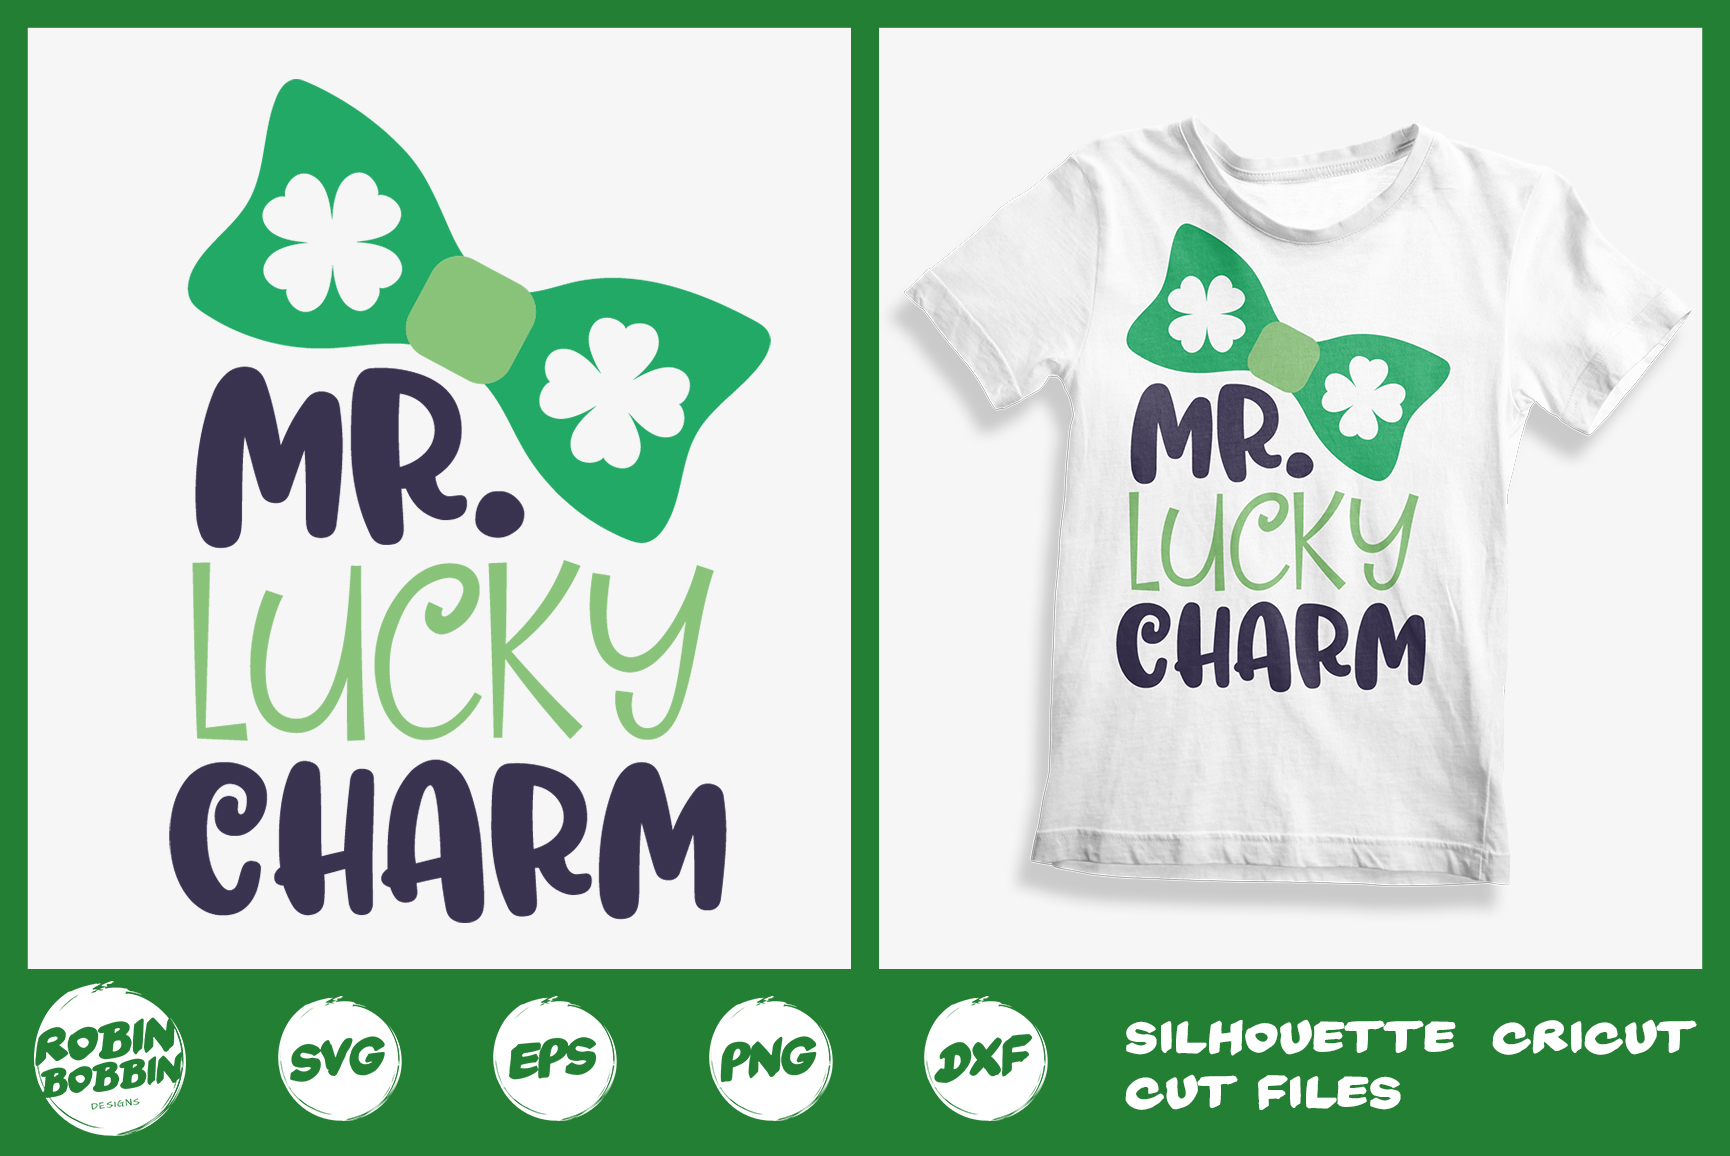 St. Patricks Day SVG, Mr. Lucky Charm SVG, Crafters SVG example image 1